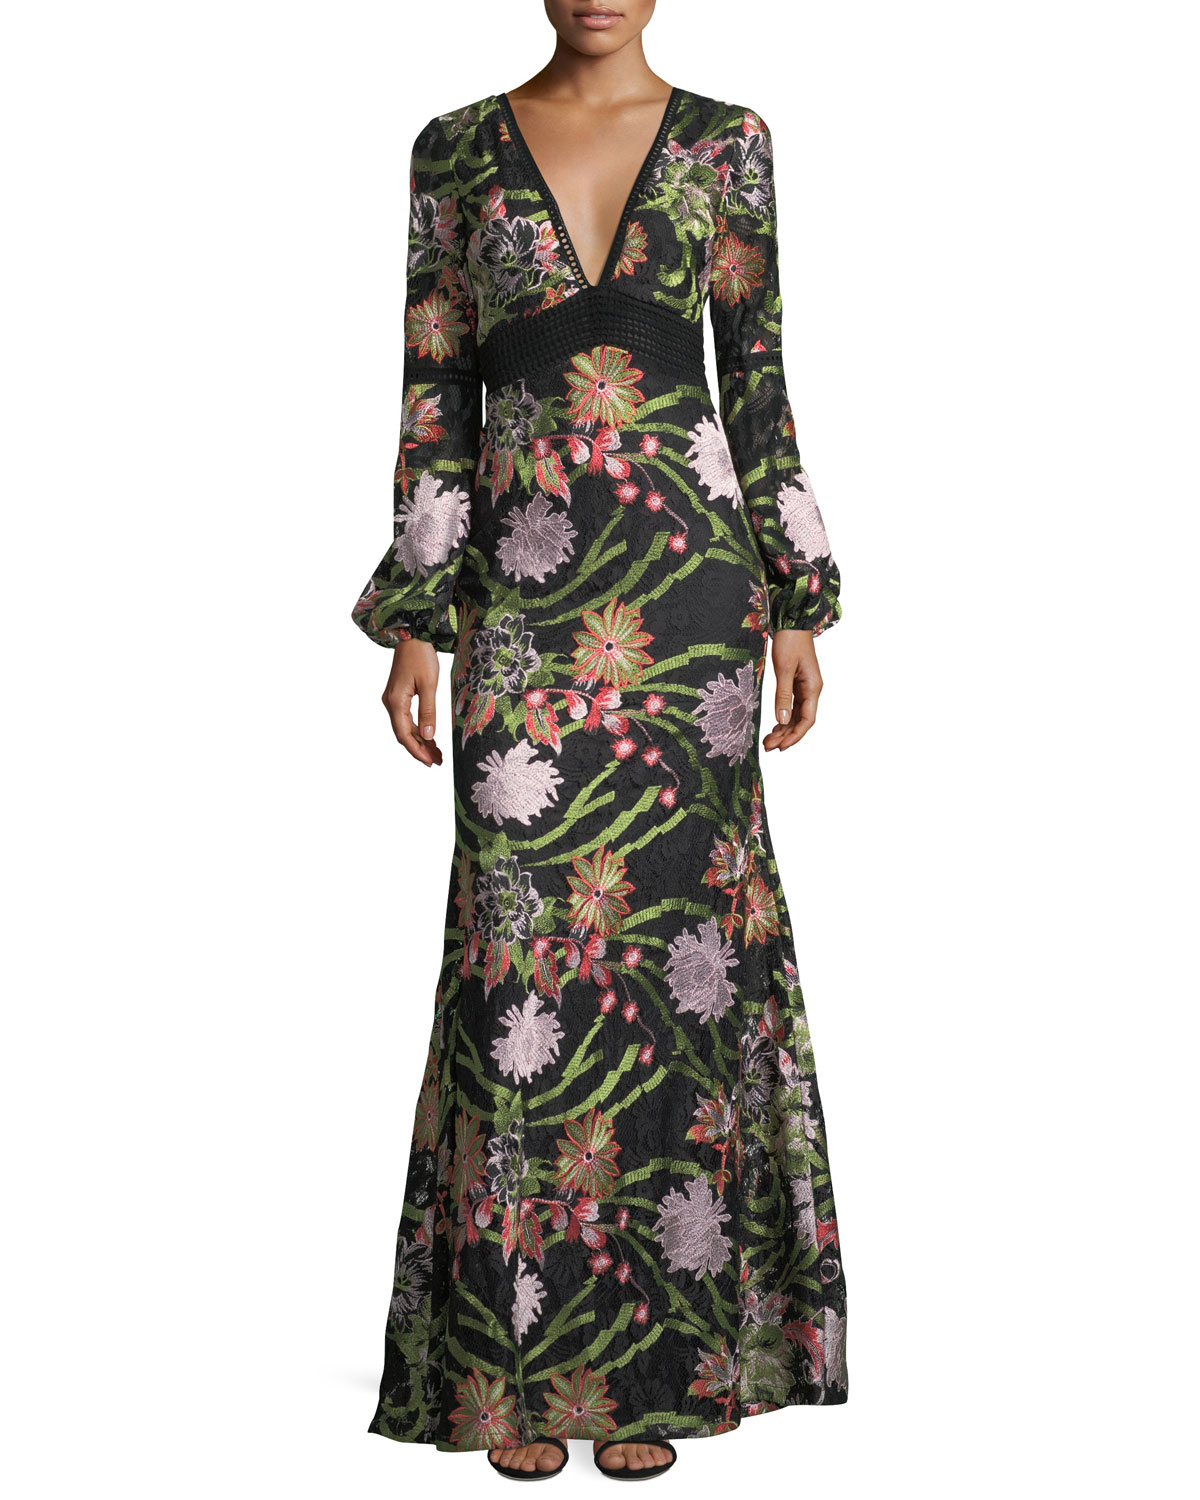 Badgley Mischka Floral Imported Gown | Neiman Marcus